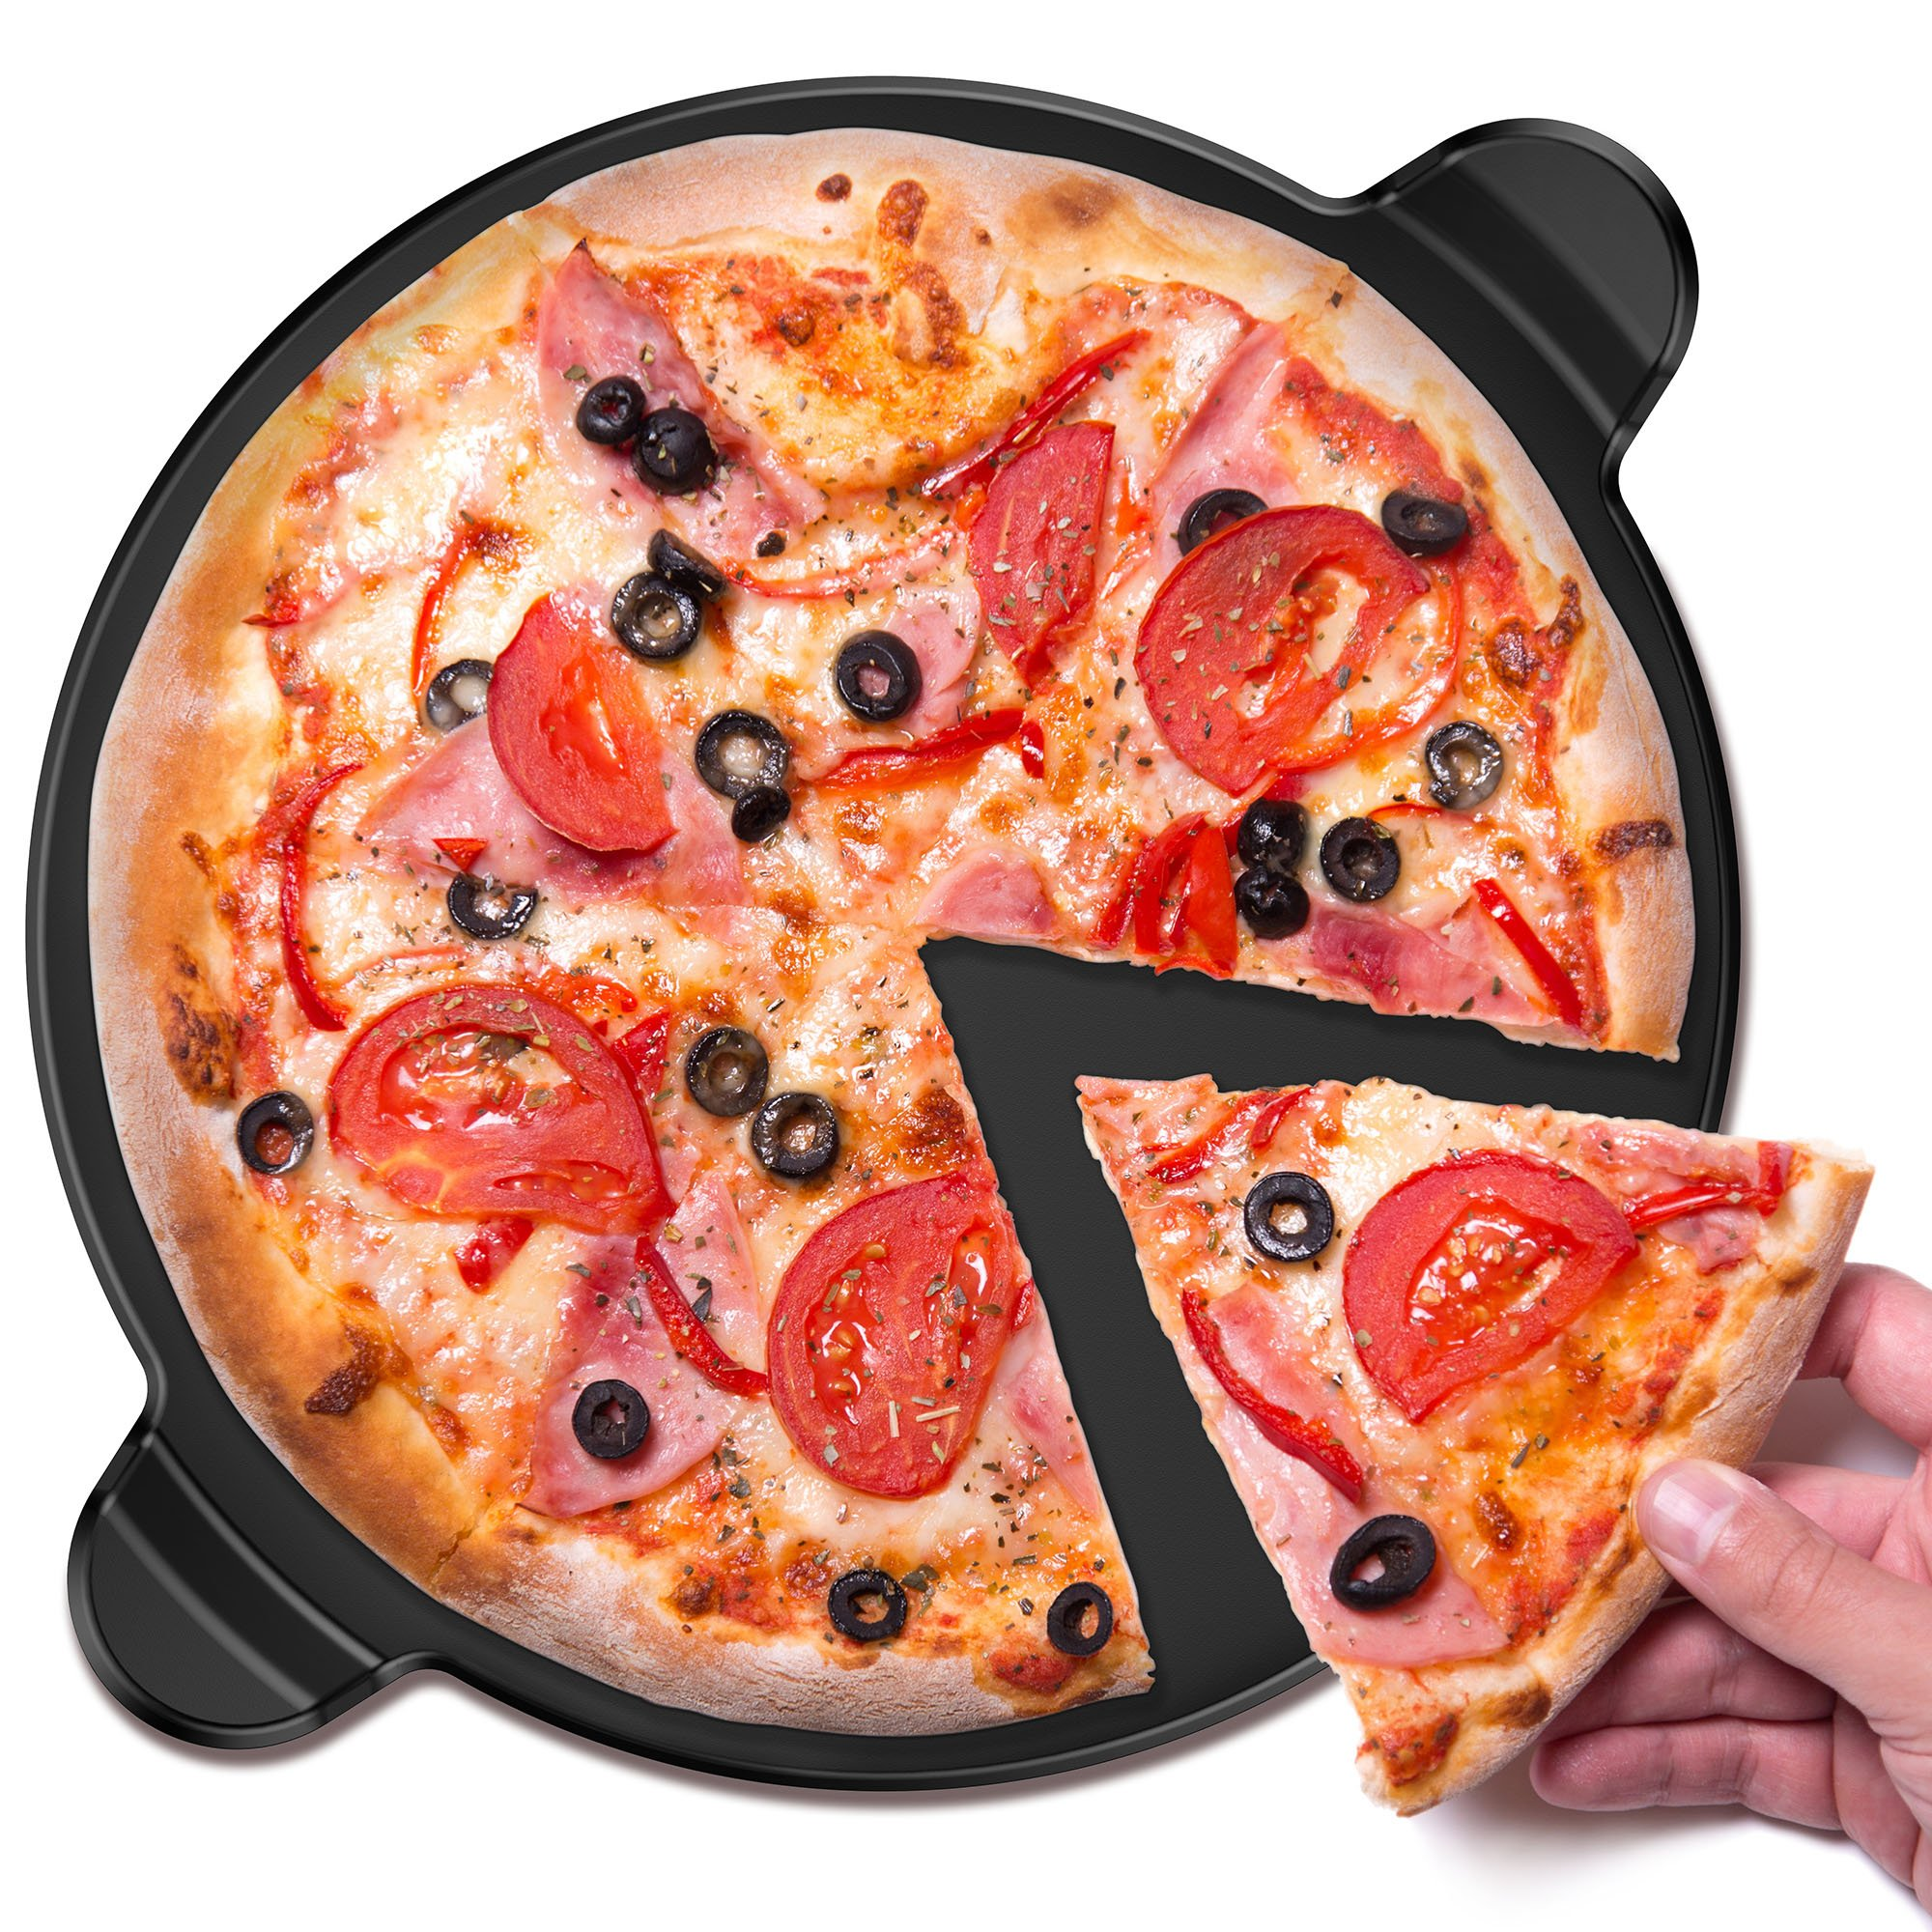 Vremi Ceramic Pizza Stone for Grill and Oven - Large Round 15 Inch Nonstick Baking Stone with Built-in Handles for Kitchen or Outdoor Barbeque - Thick Professional Bread Stoneware for Pies and Tarts by Vremi